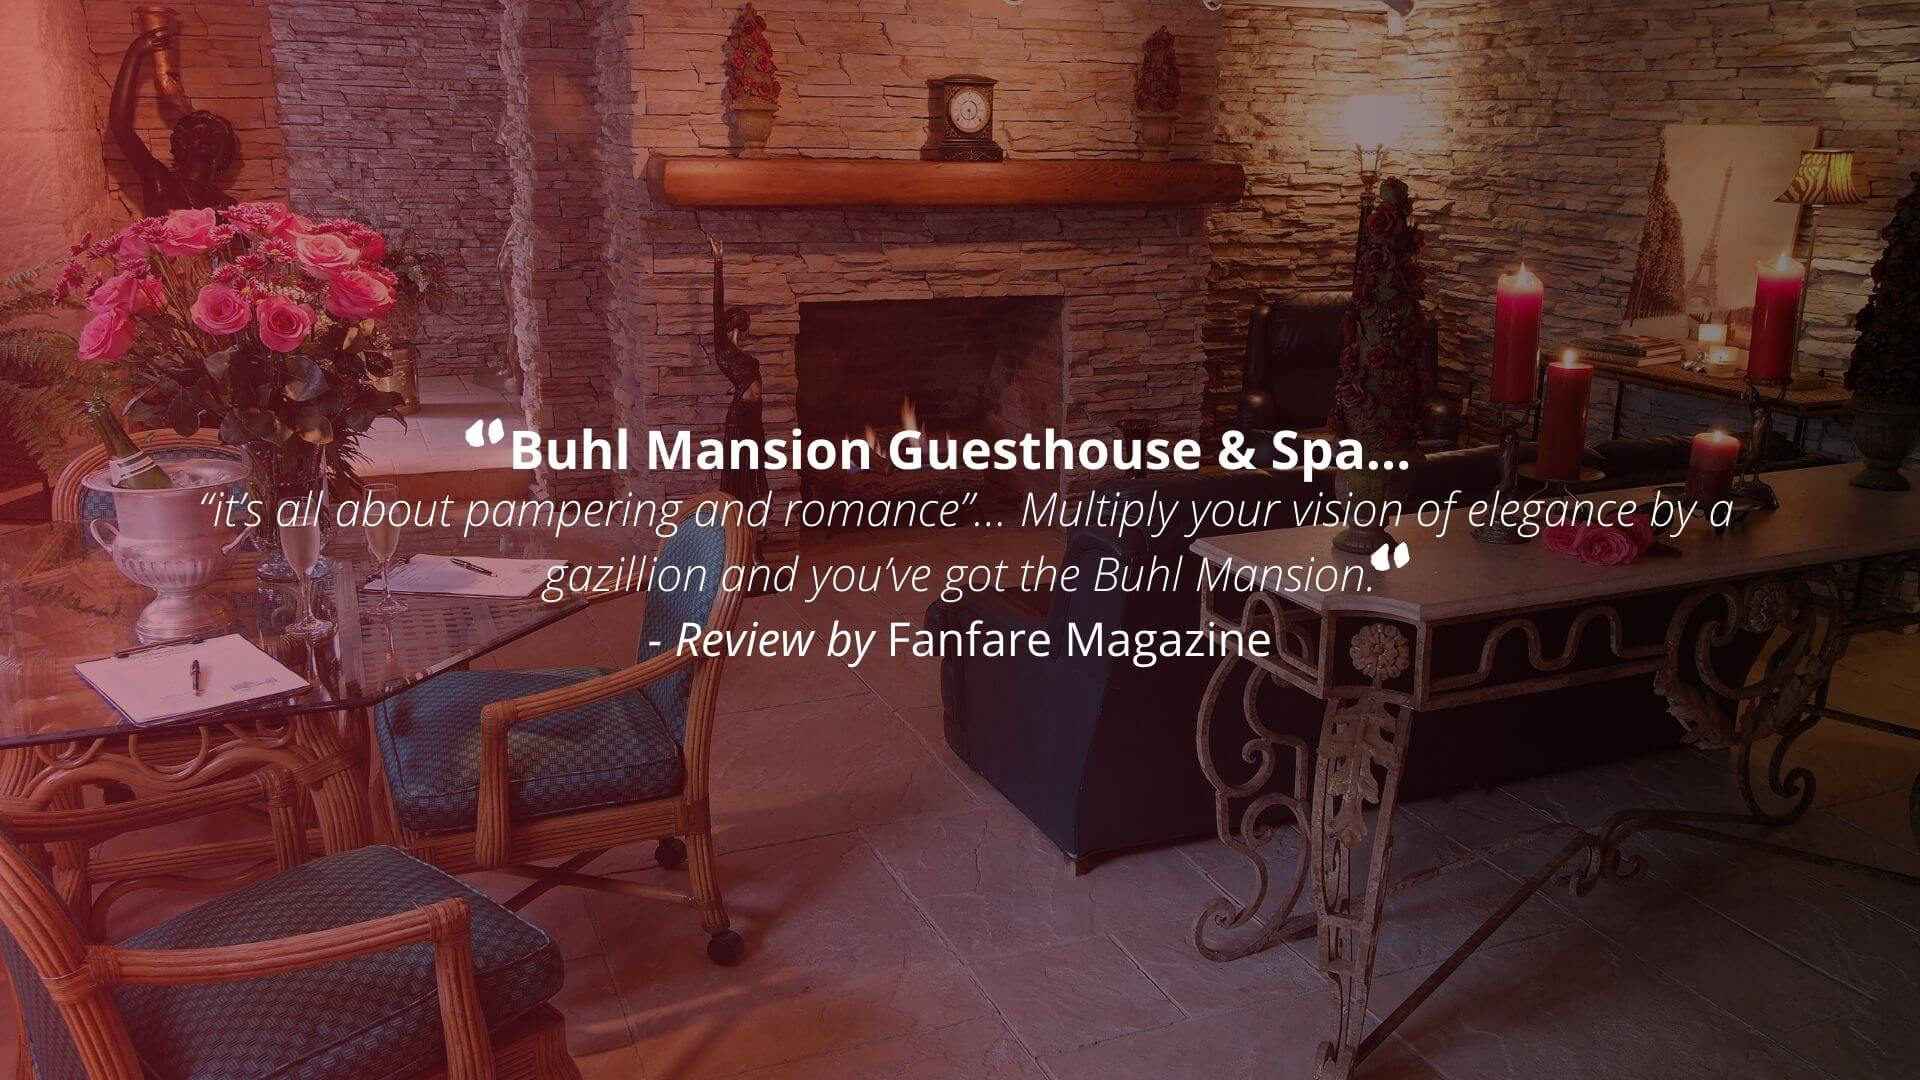 """Buhl Mansion Guesthouse & Spa... ' it's all about pampering and romance' ... Multiply your vision of elegance by a gazillion and you've got the Buhl Mansion."" - Review by Fanfare Magazine"